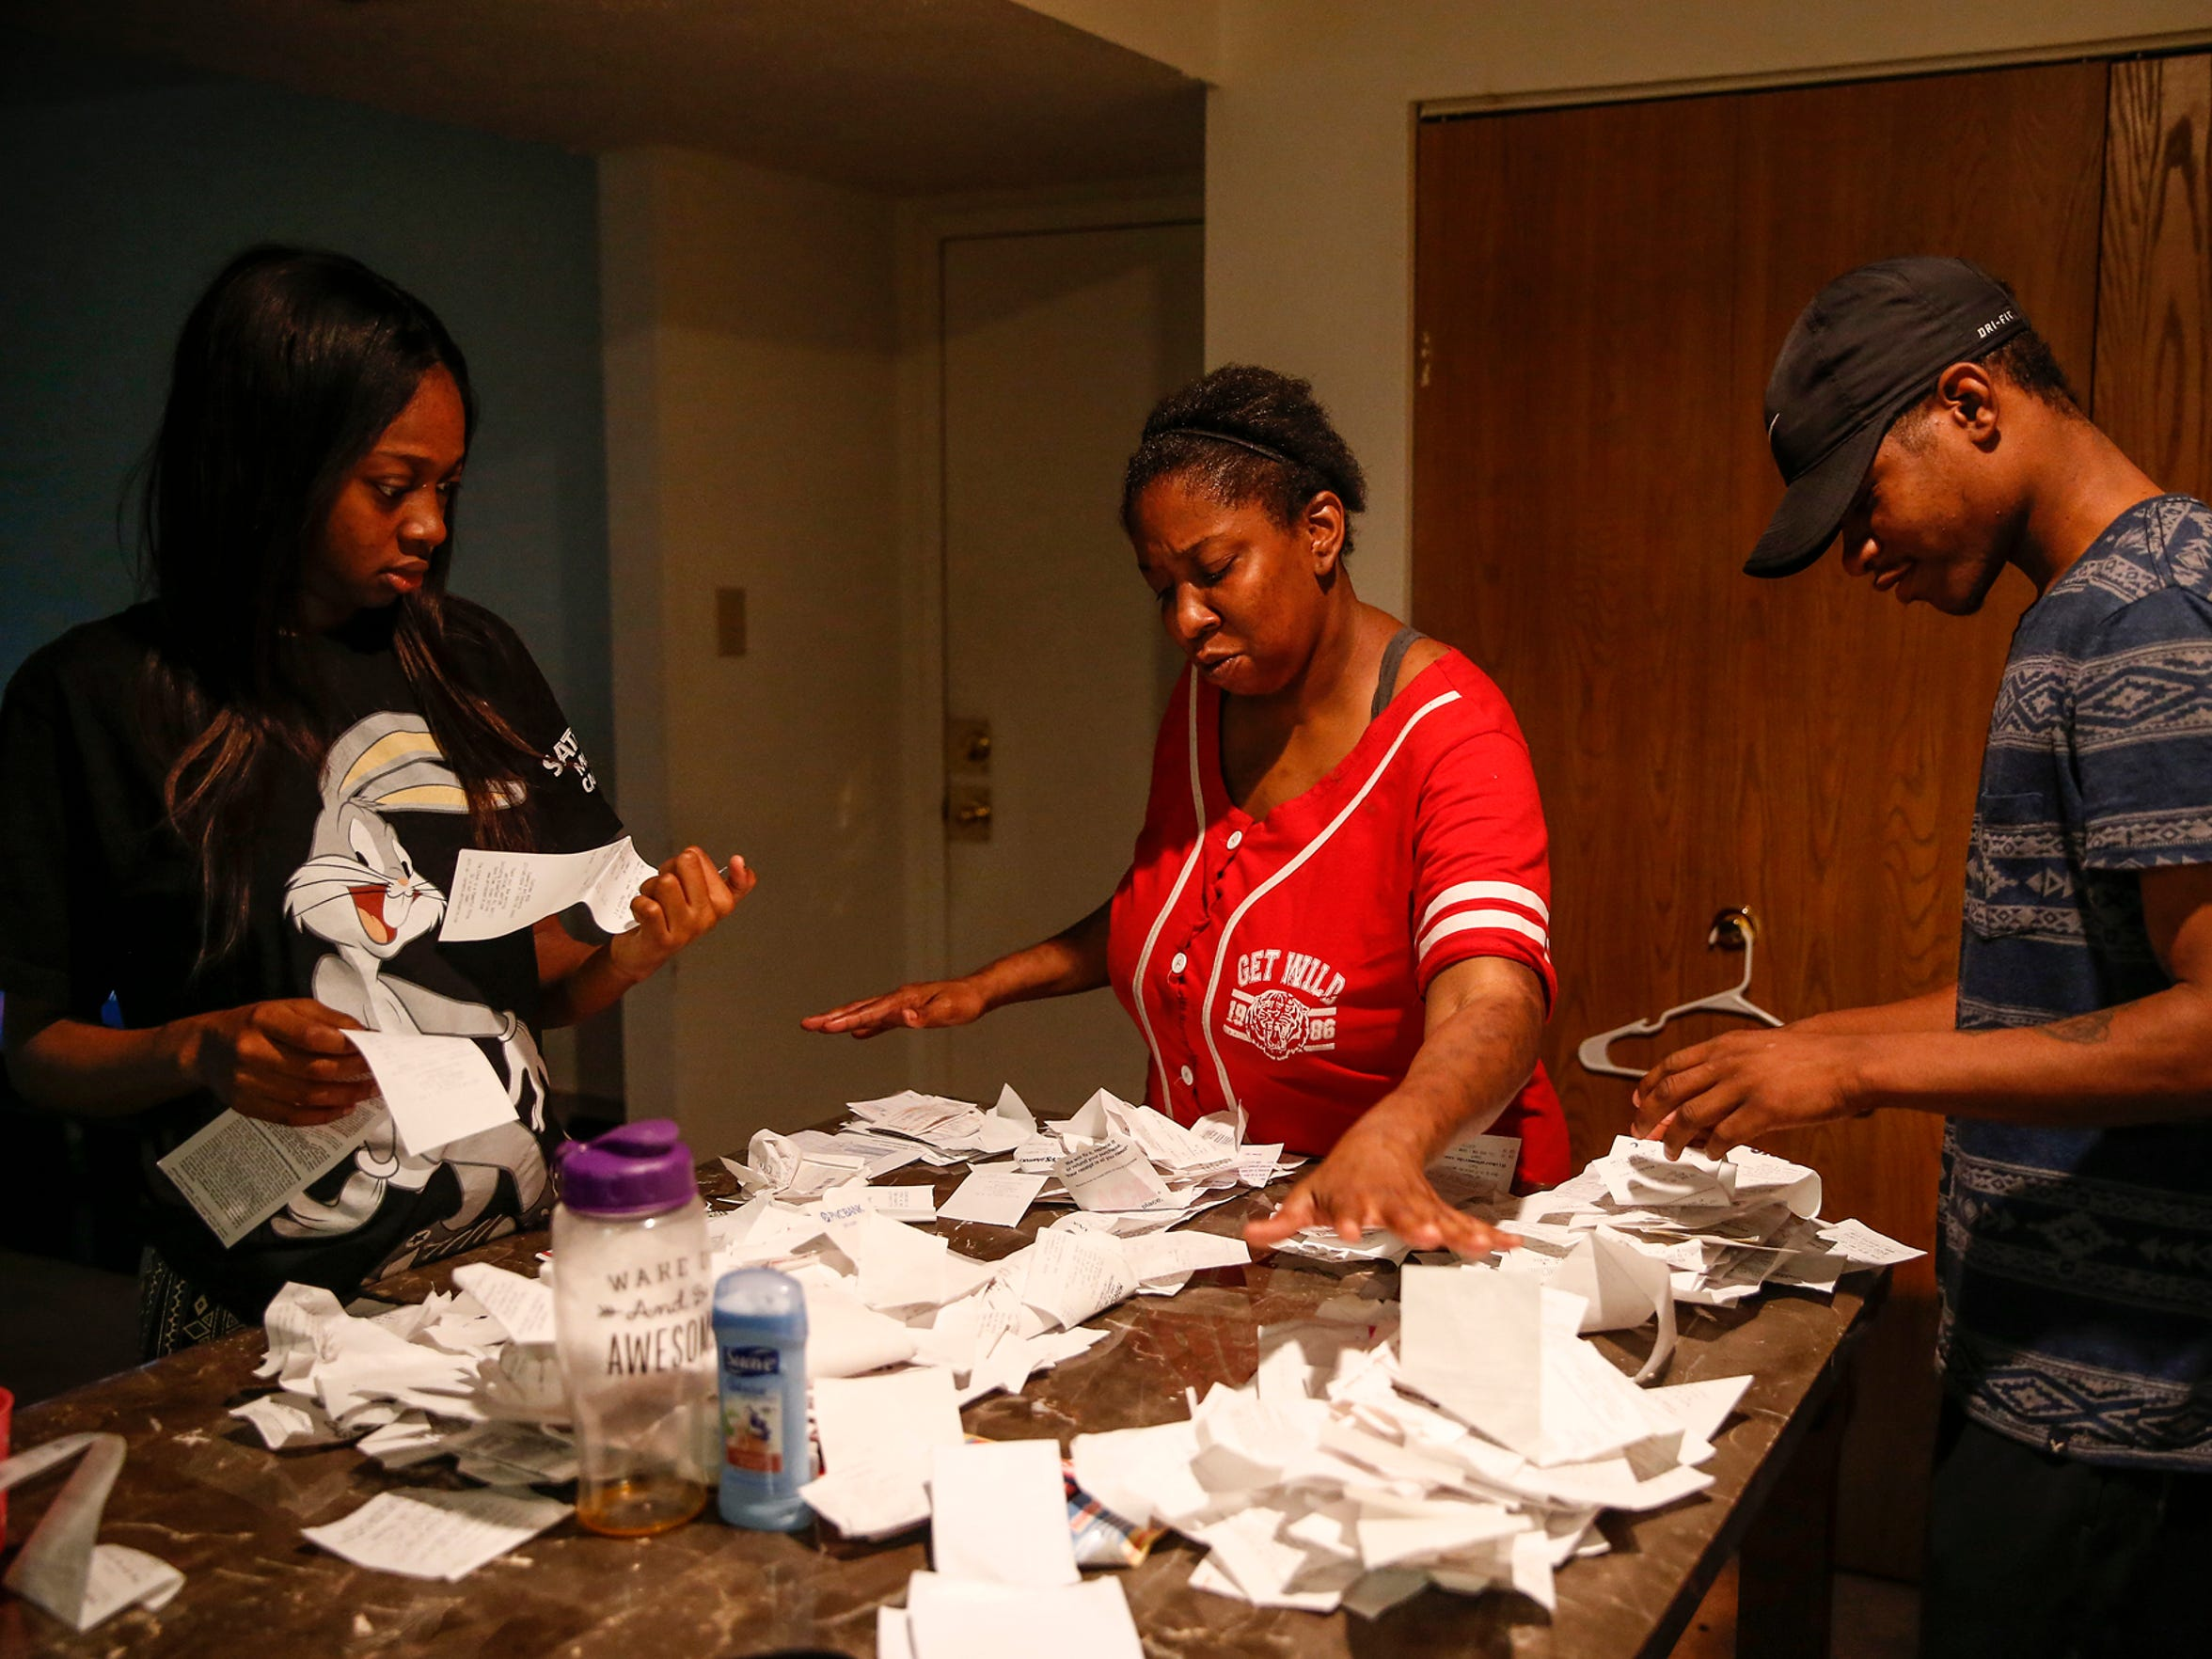 "De'Janae, left, her mother and boyfriend, Richard Ceaser, search for a diaper receipt on Saturday, May 20, 2017. Simpson wants to return a box for a different size. Ceaser, though not the father of De'Janae's baby, has been helping her throughout her pregnancy. From doctors appointments to providing money help, Ceaser says he'll treat the baby like his own. ""I'm excited to take her to your volleyball games,"" he said. ""We'll sit in there and cheer for you."" De'Janae isn't sure if she'll be able to return to the sport she loves after giving birth."